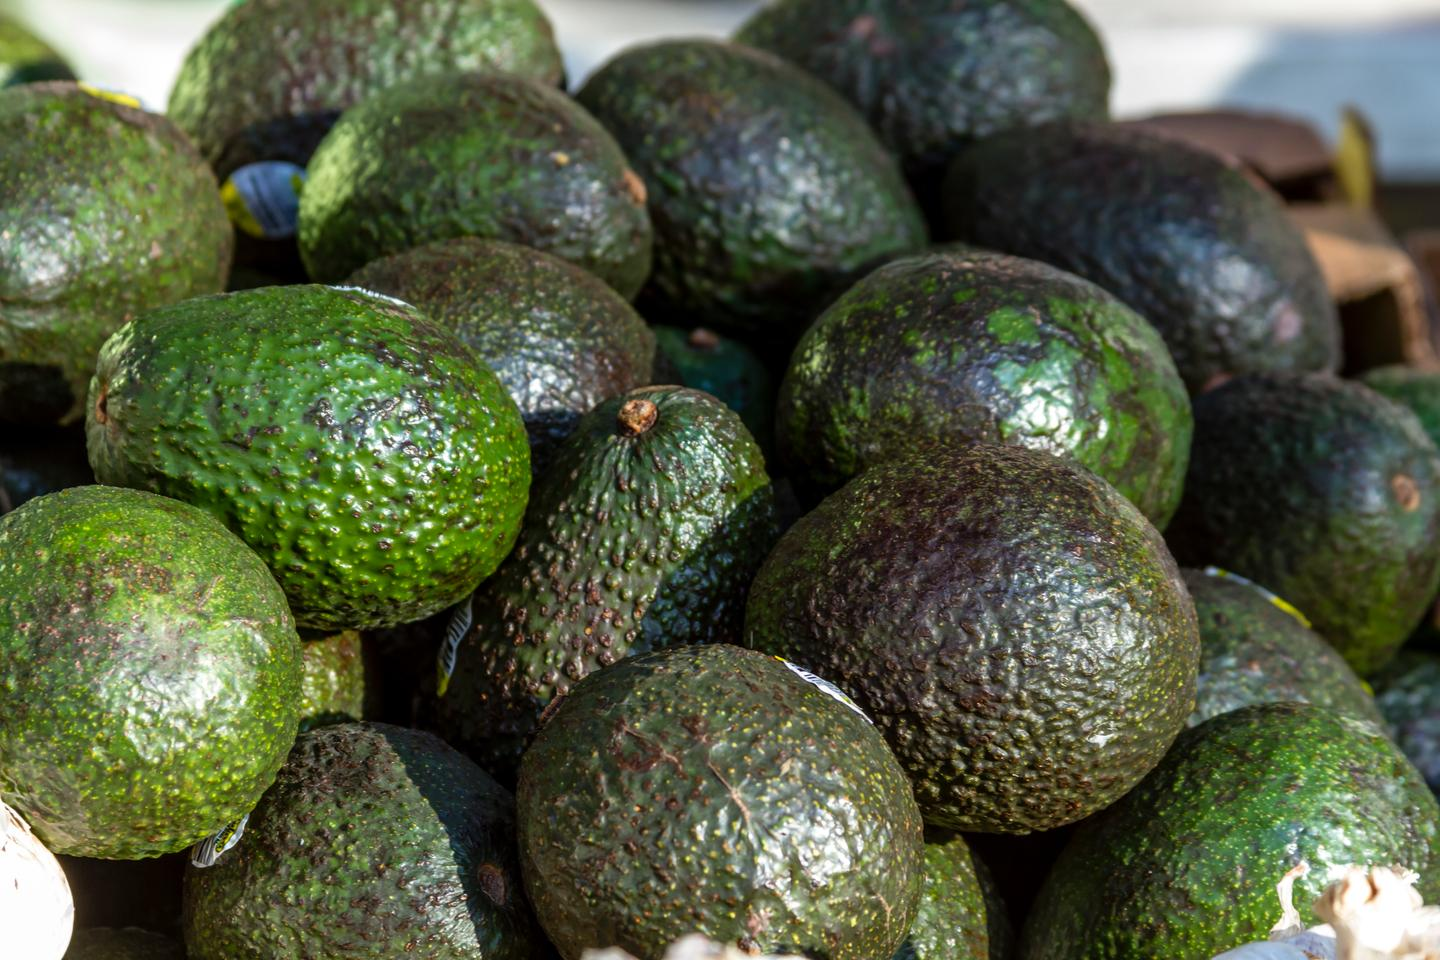 Apeel-coated avocados reportedly stay ripe (without spoiling) twice as long as their untreated counterparts